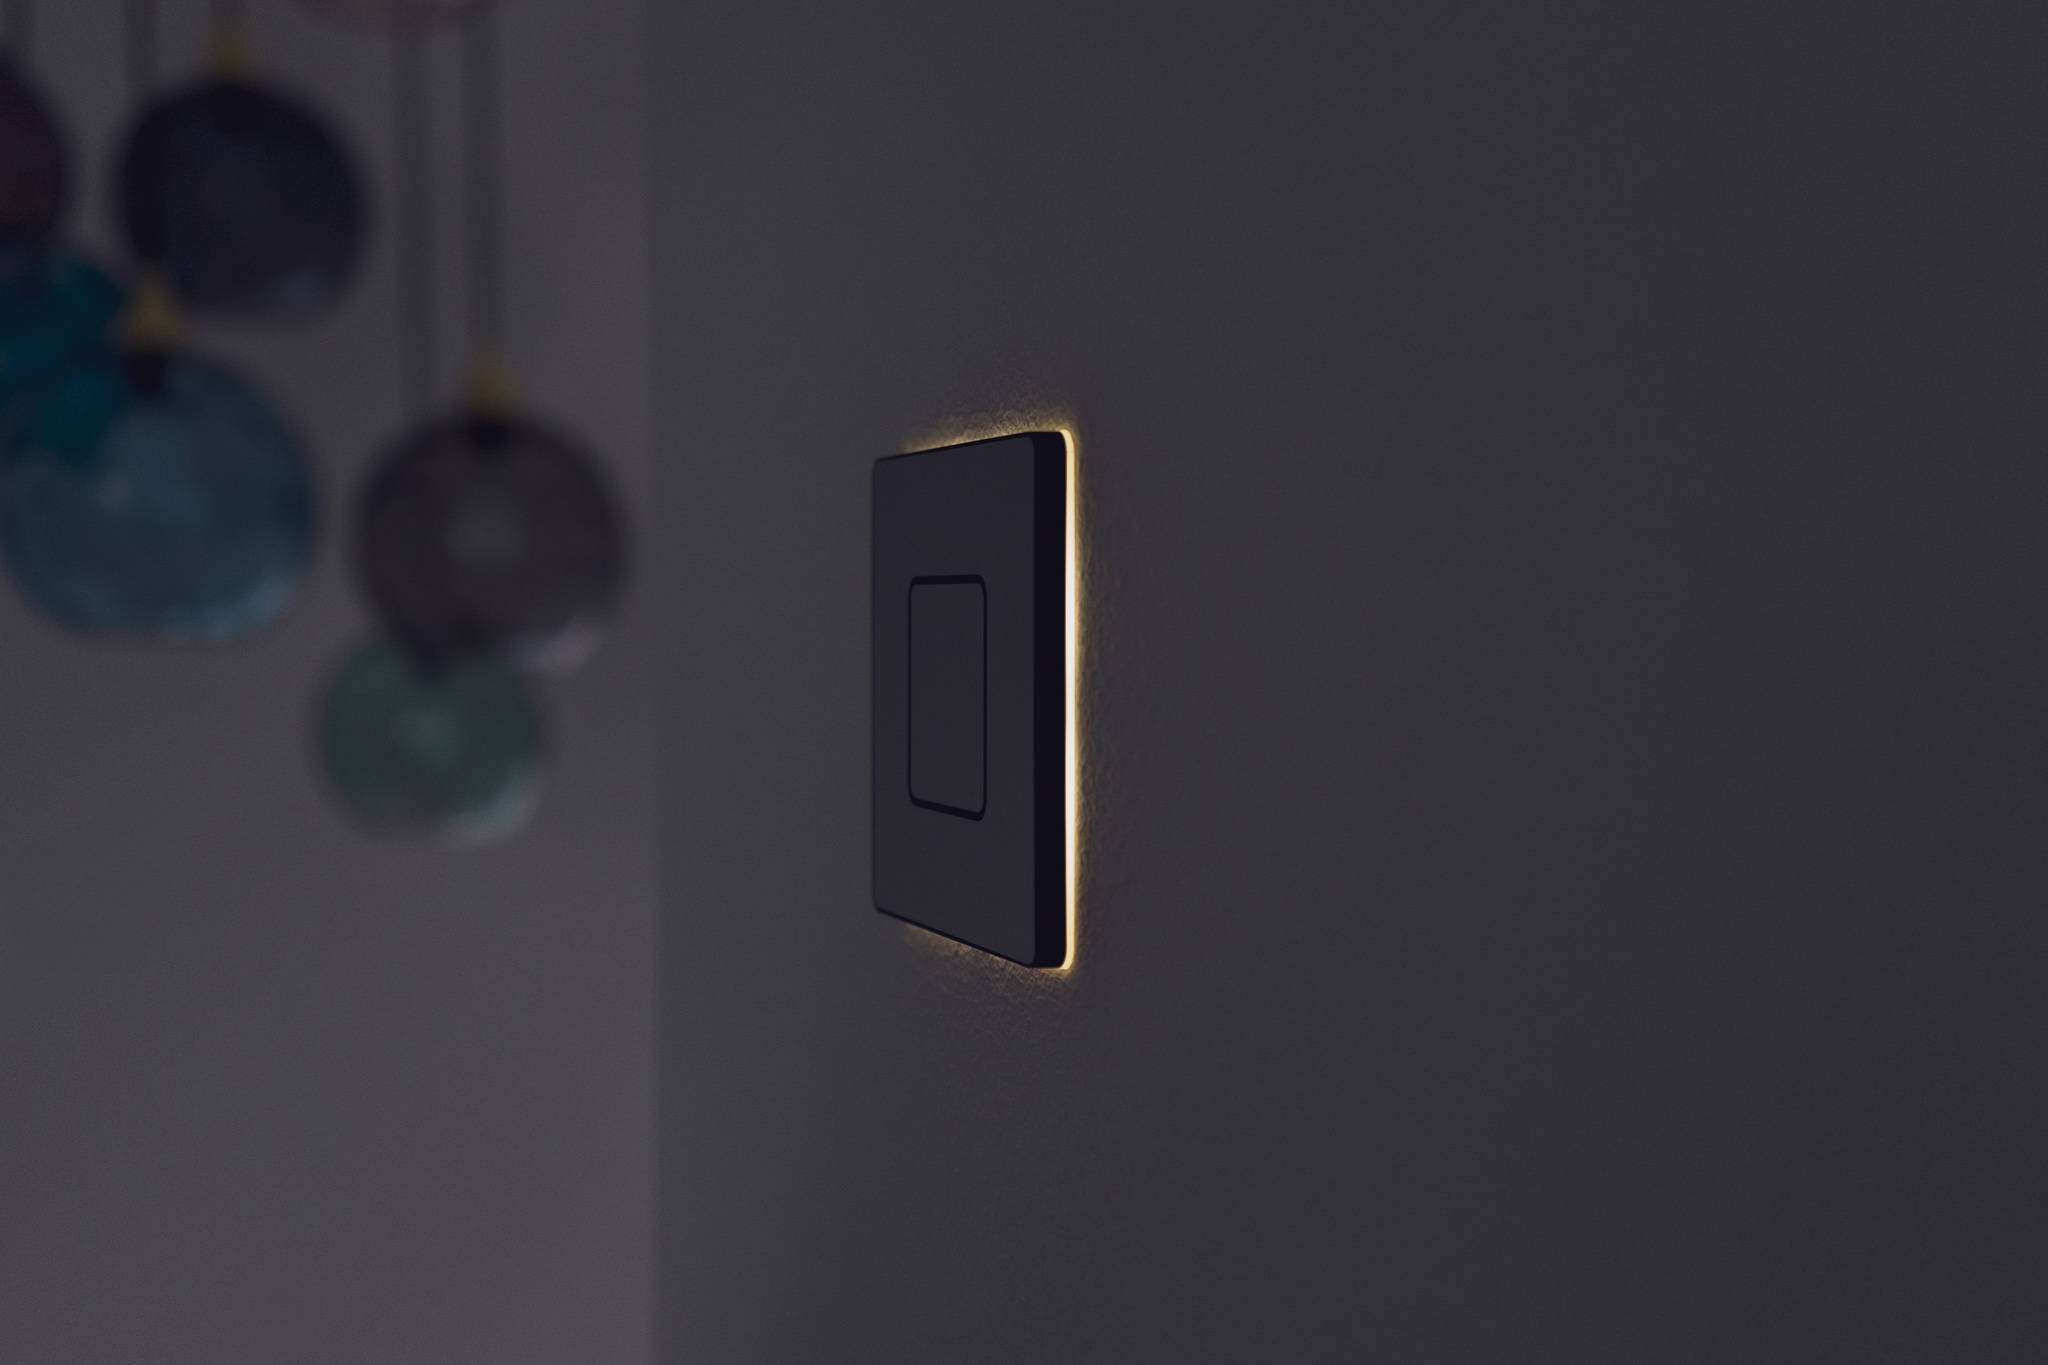 Faradite TAP 1 switch on wall with lights off on a Loxone smart home.